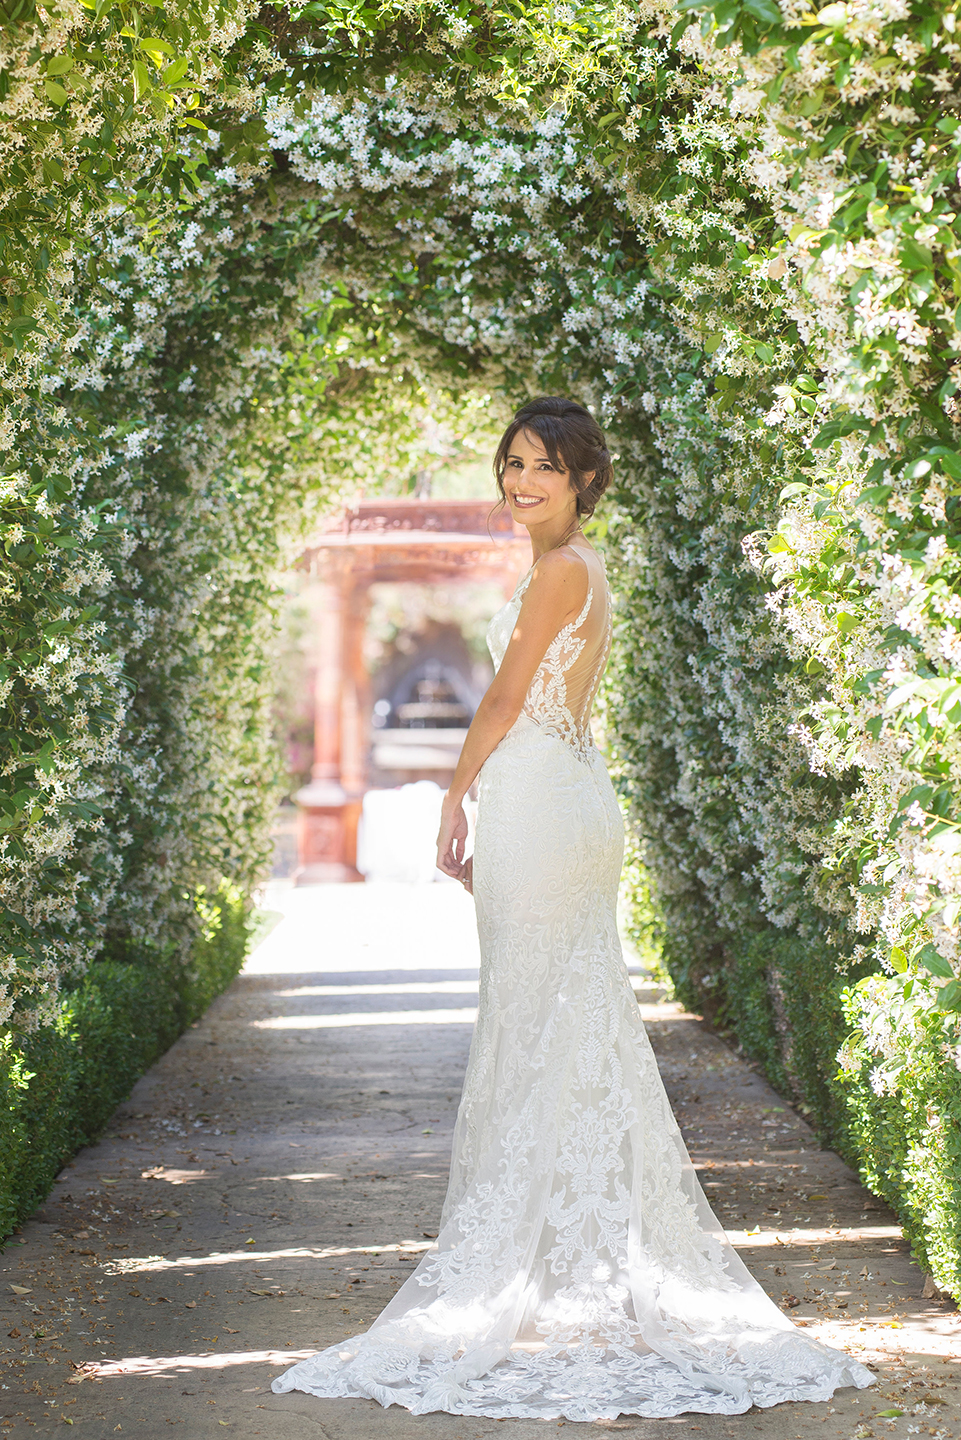 We both fell in love with this honeysuckle archway too and knew we had to get some shots in here as well!